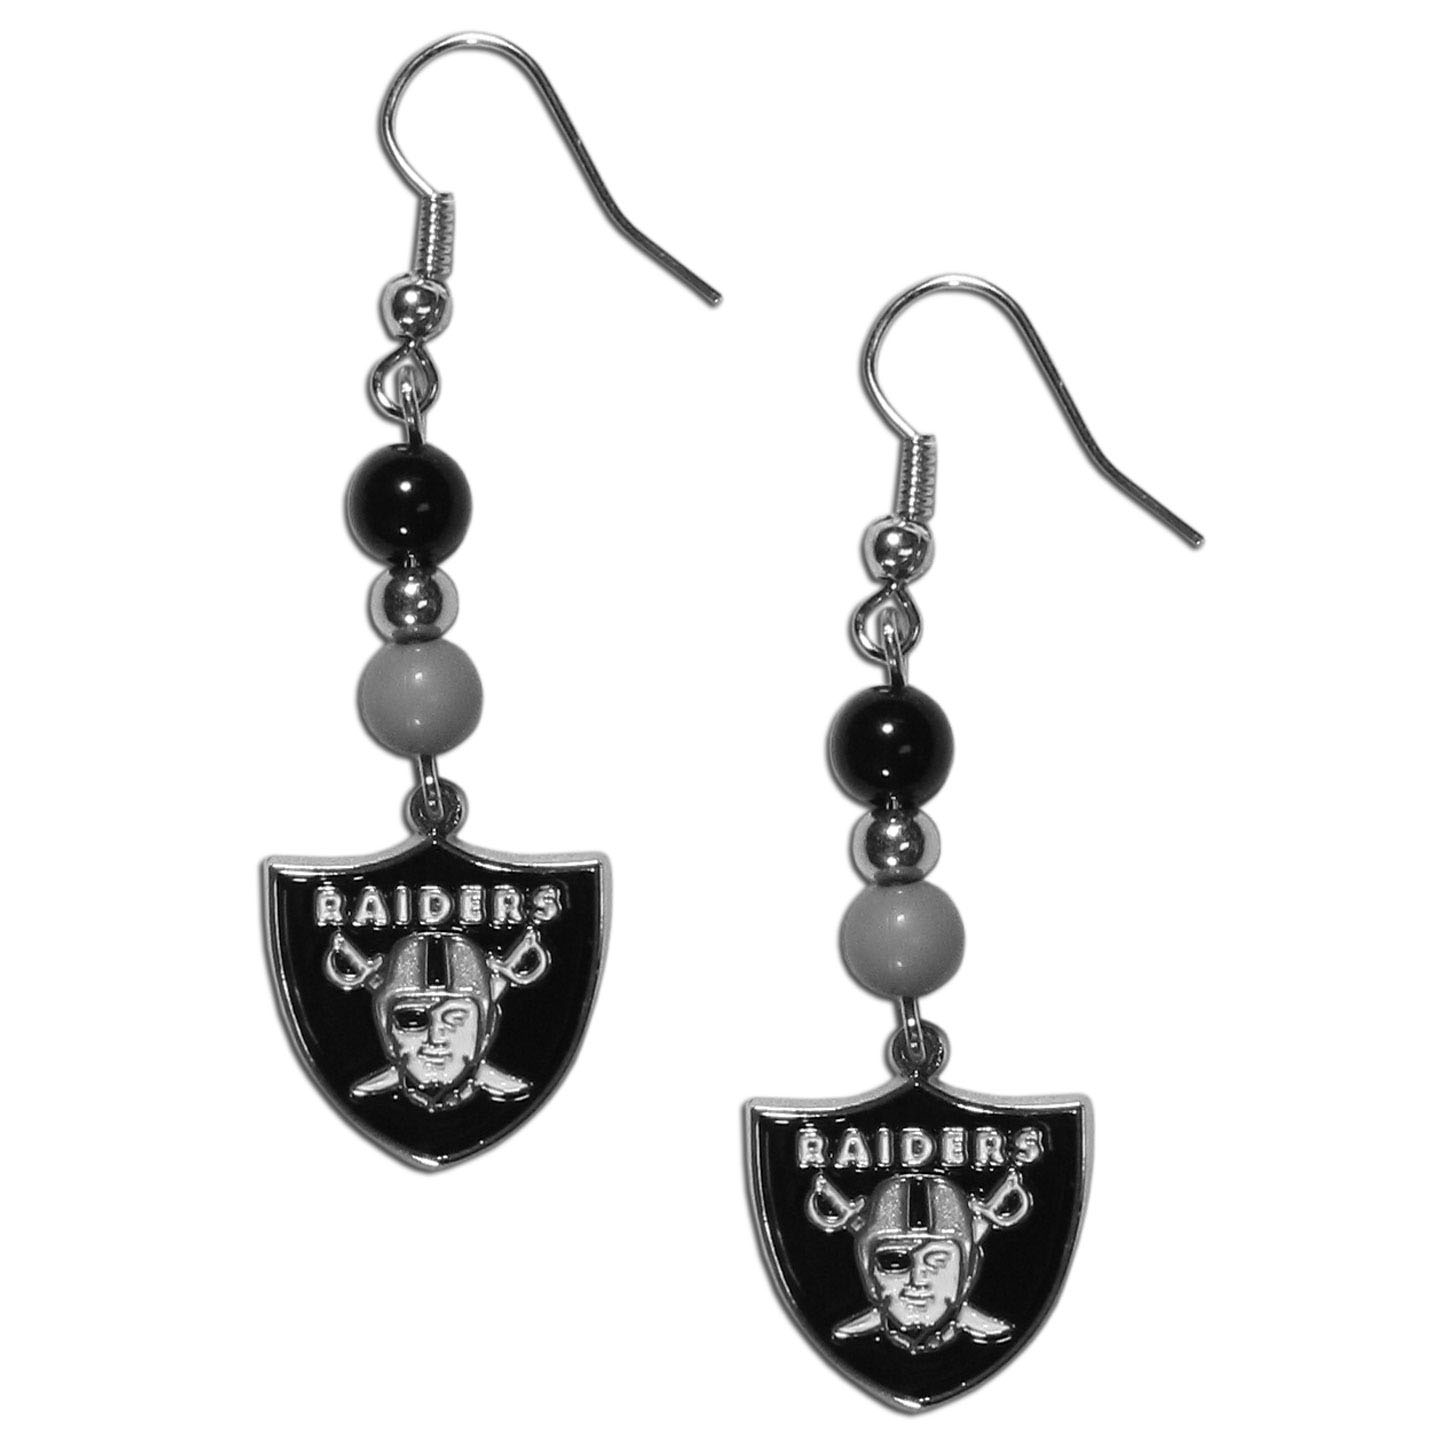 Oakland Raiders Fan Bead Dangle Earrings - Love your team, show it off with our Oakland Raiders bead dangle earrings! These super cute earrings hang approximately 2 inches and features 2 team colored beads and a high polish team charm. A must have for game day!